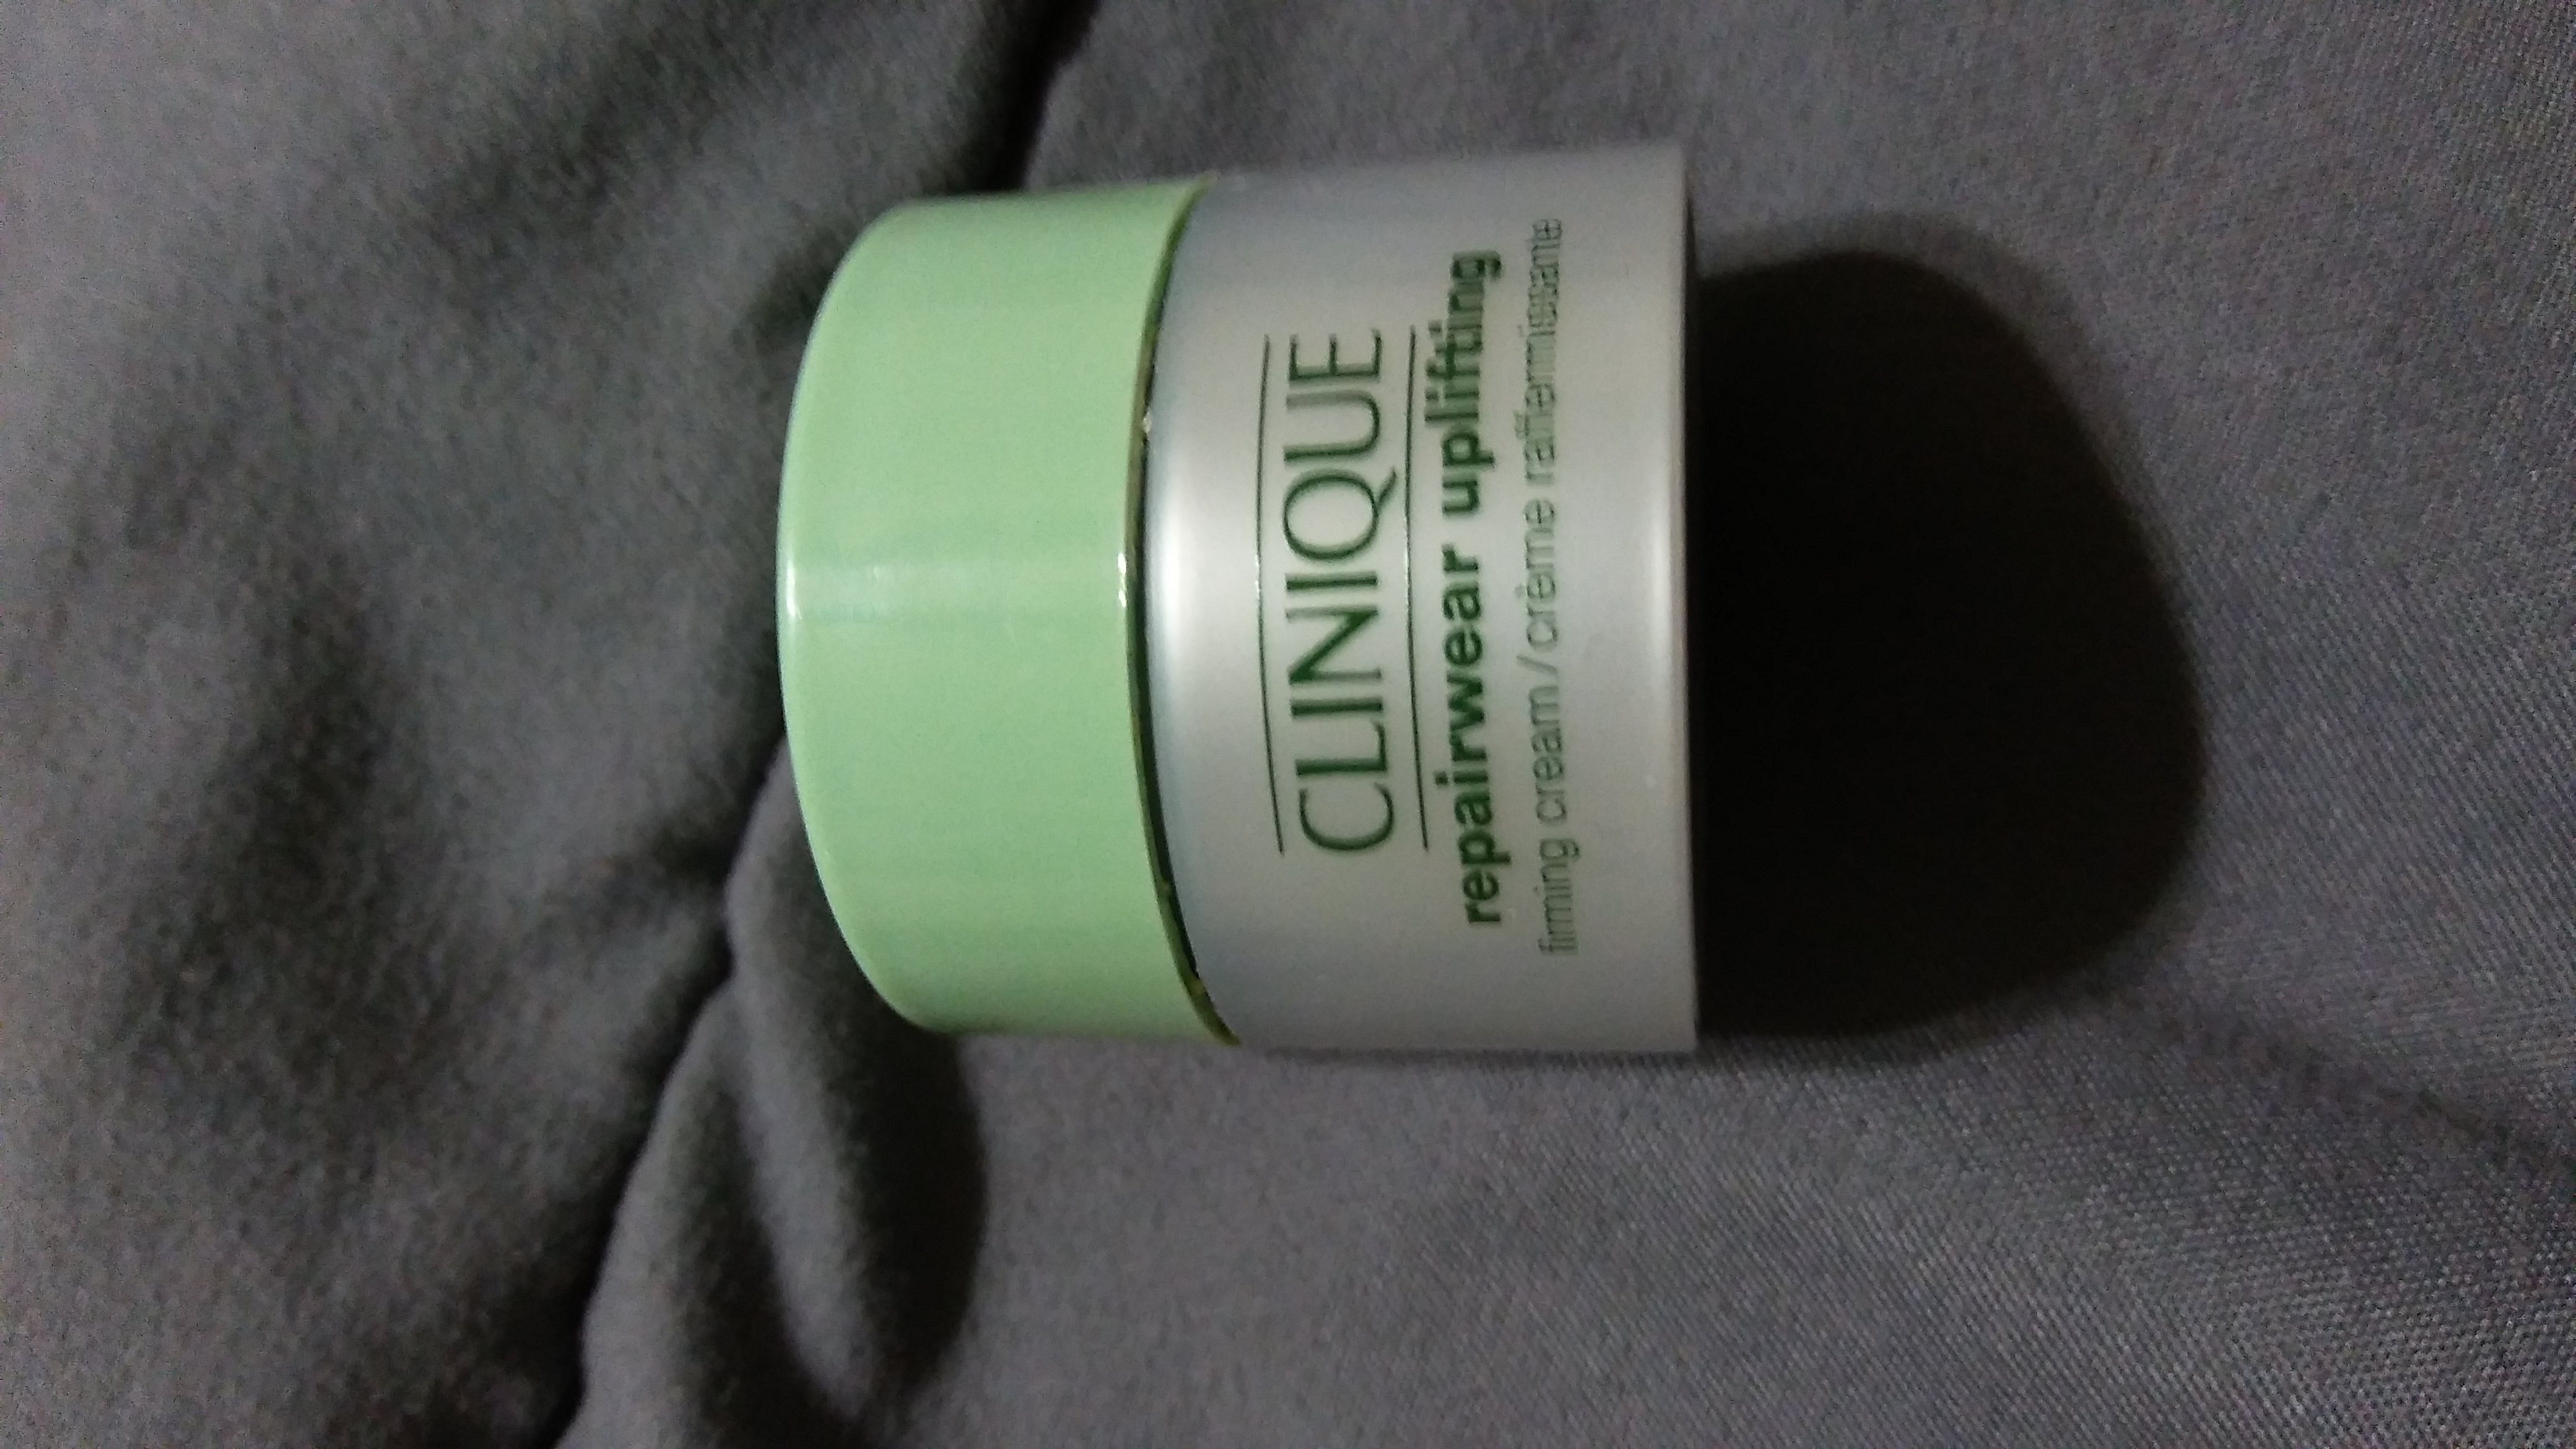 Clinique Repairwear™ Uplifting Firming Cream uploaded by Valezqua M.